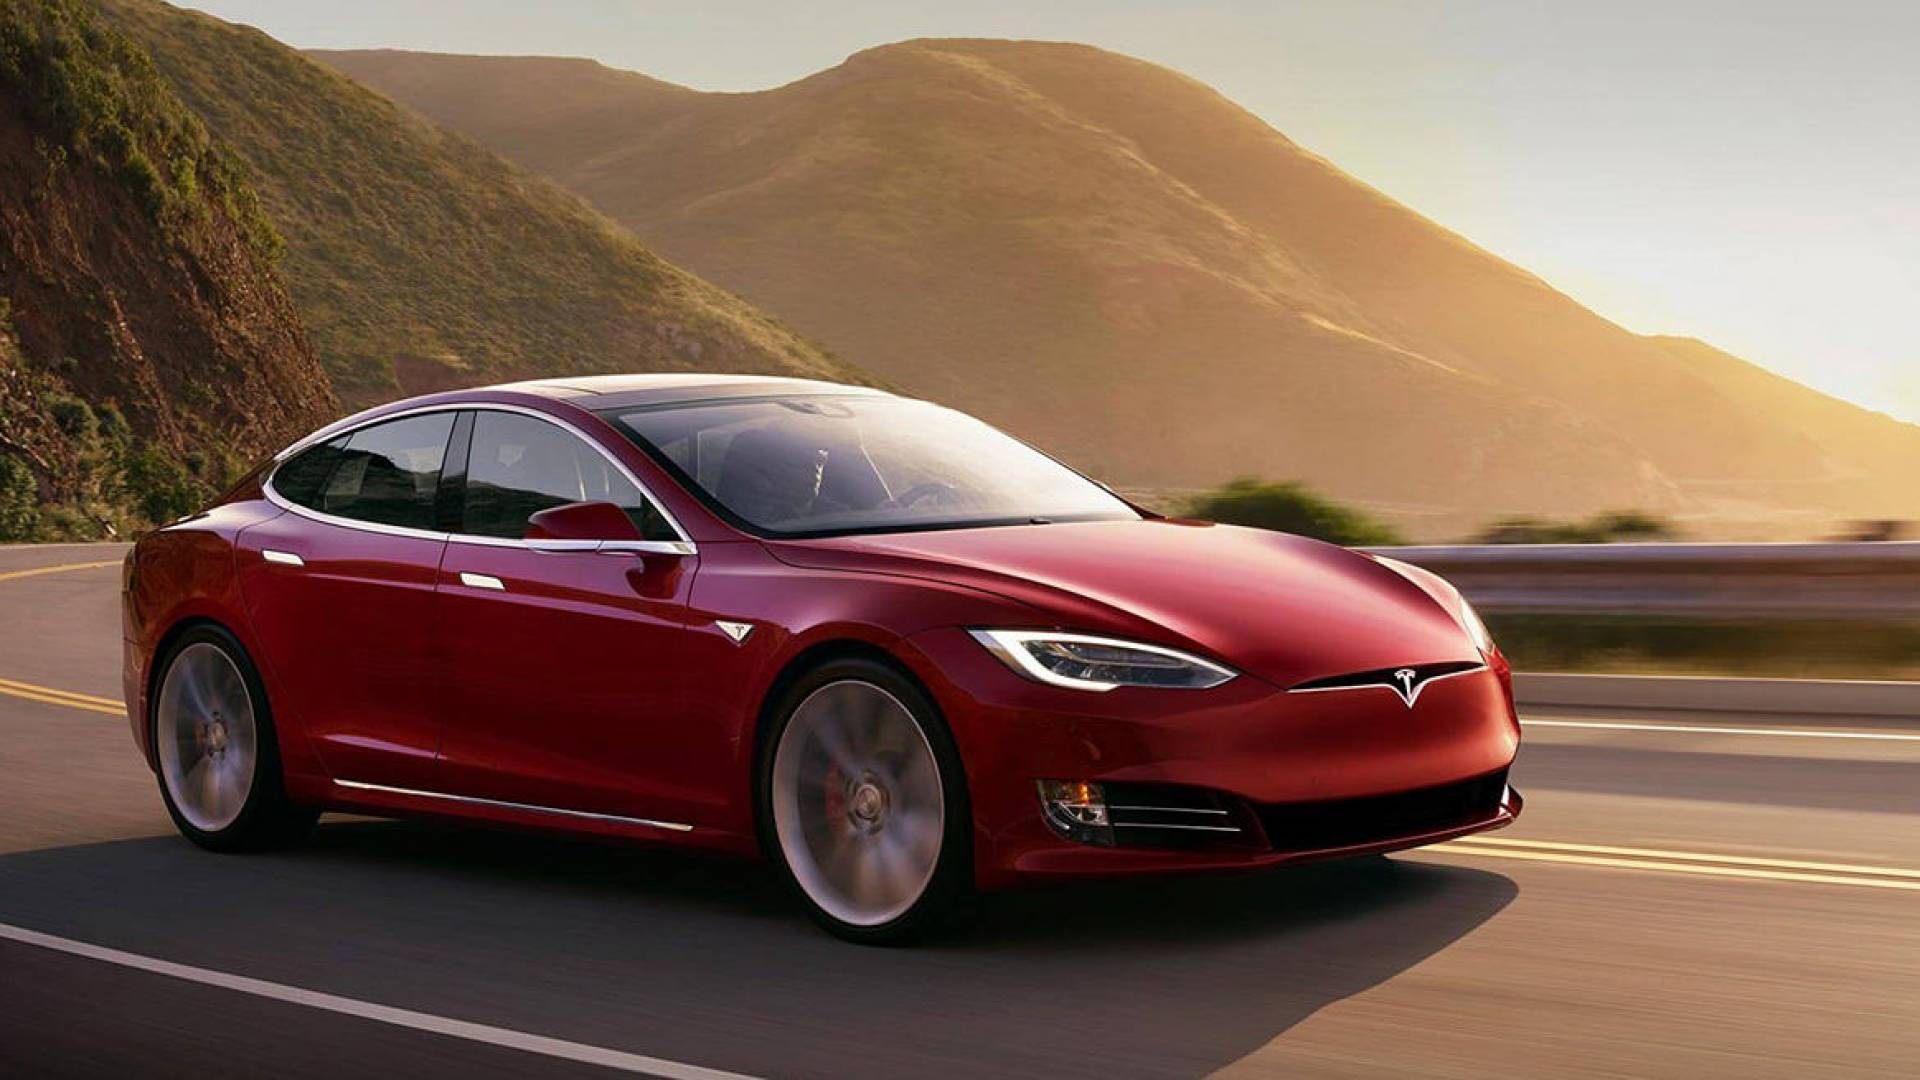 tesla model s precios noticias prueba ficha t cnica y. Black Bedroom Furniture Sets. Home Design Ideas